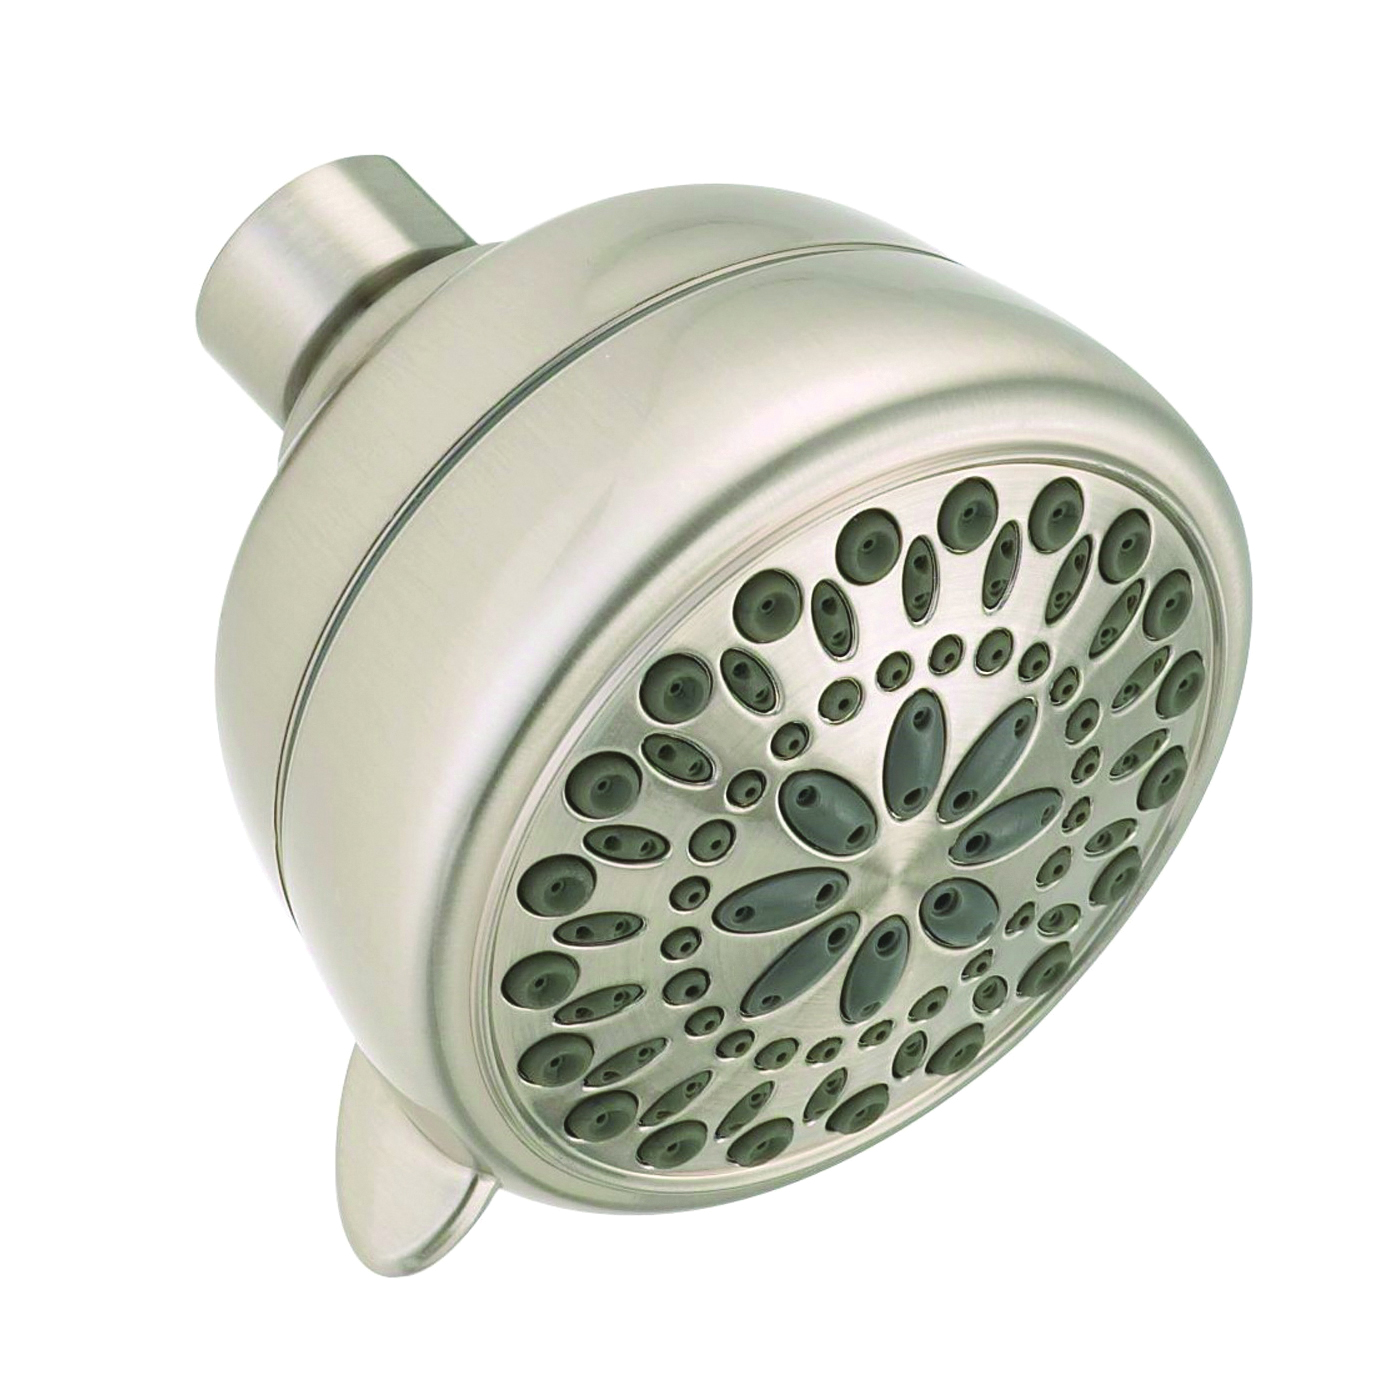 Picture of DELTA 75763SN Shower Head, 2 gpm, 1/2 in Connection, IPS, ABS, Satin Nickel, 3-3/8 in Dia